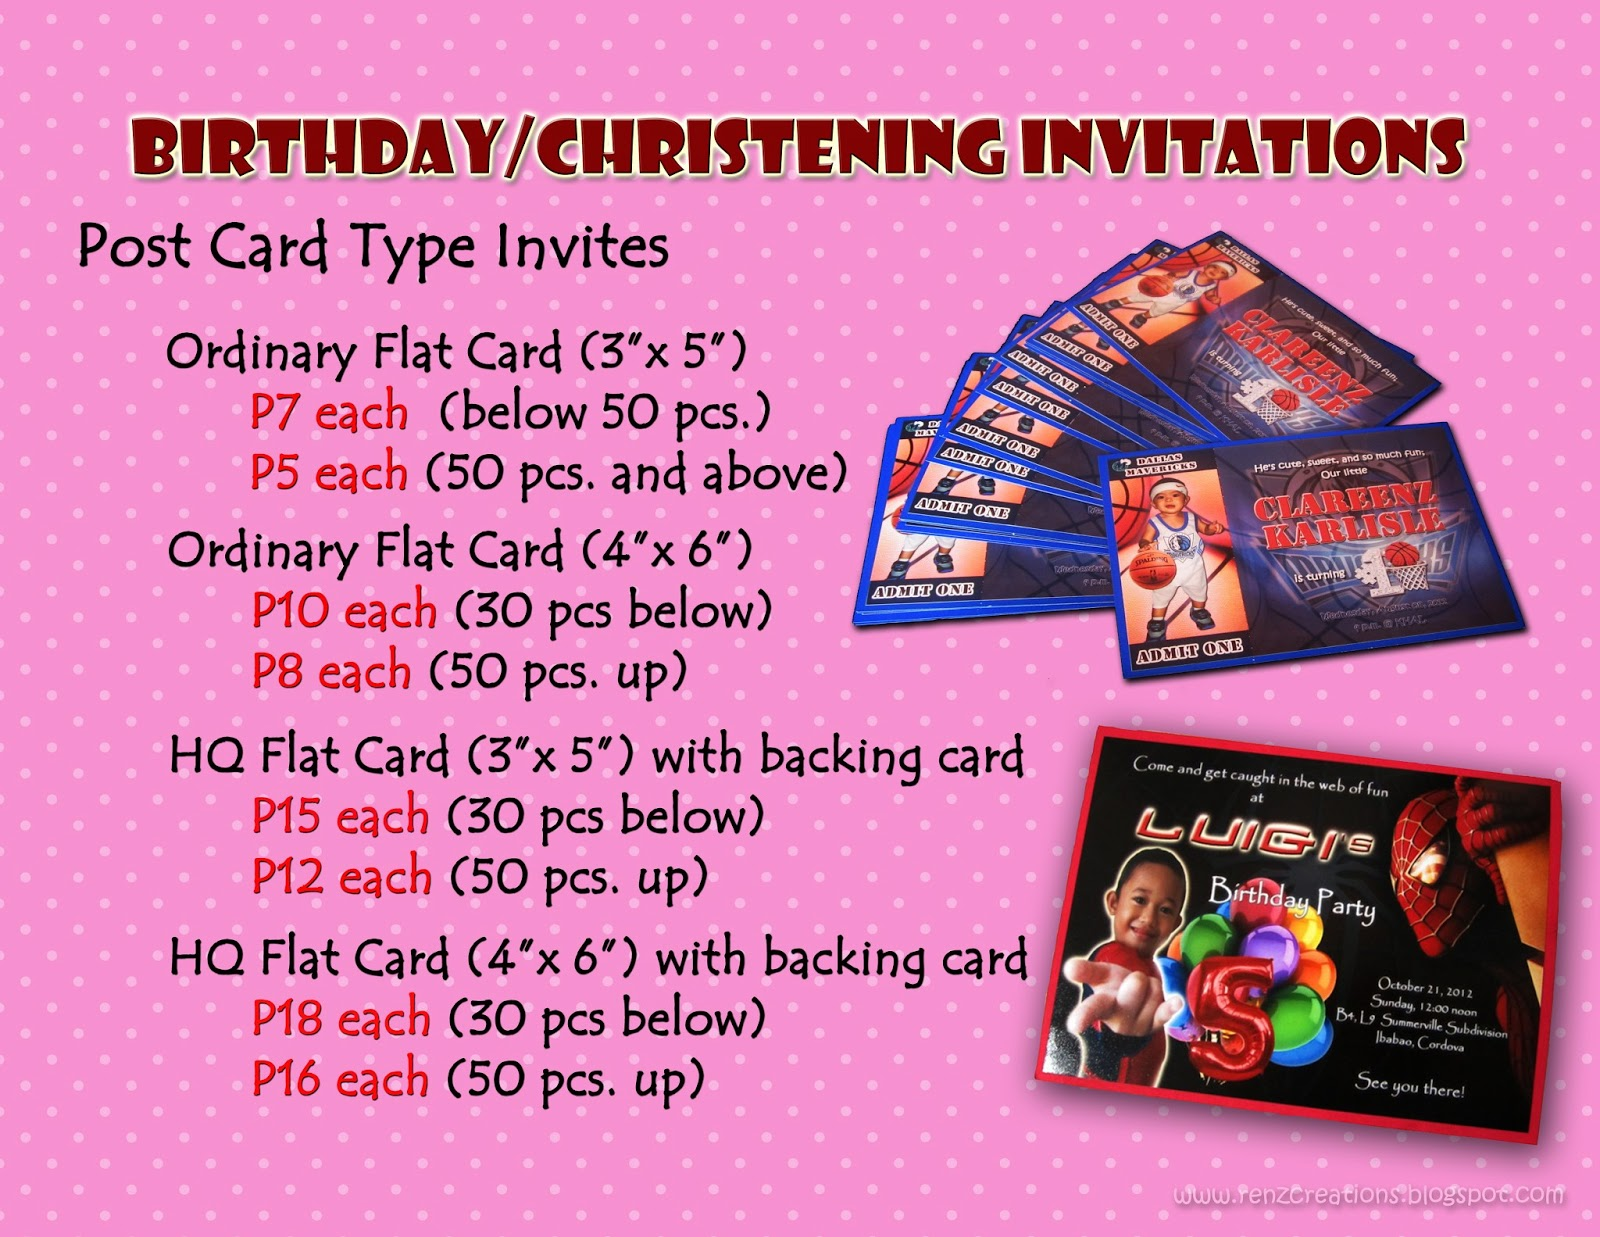 Renz creations invitations and giveaways prices invitation cards prices invitation cards stopboris Choice Image